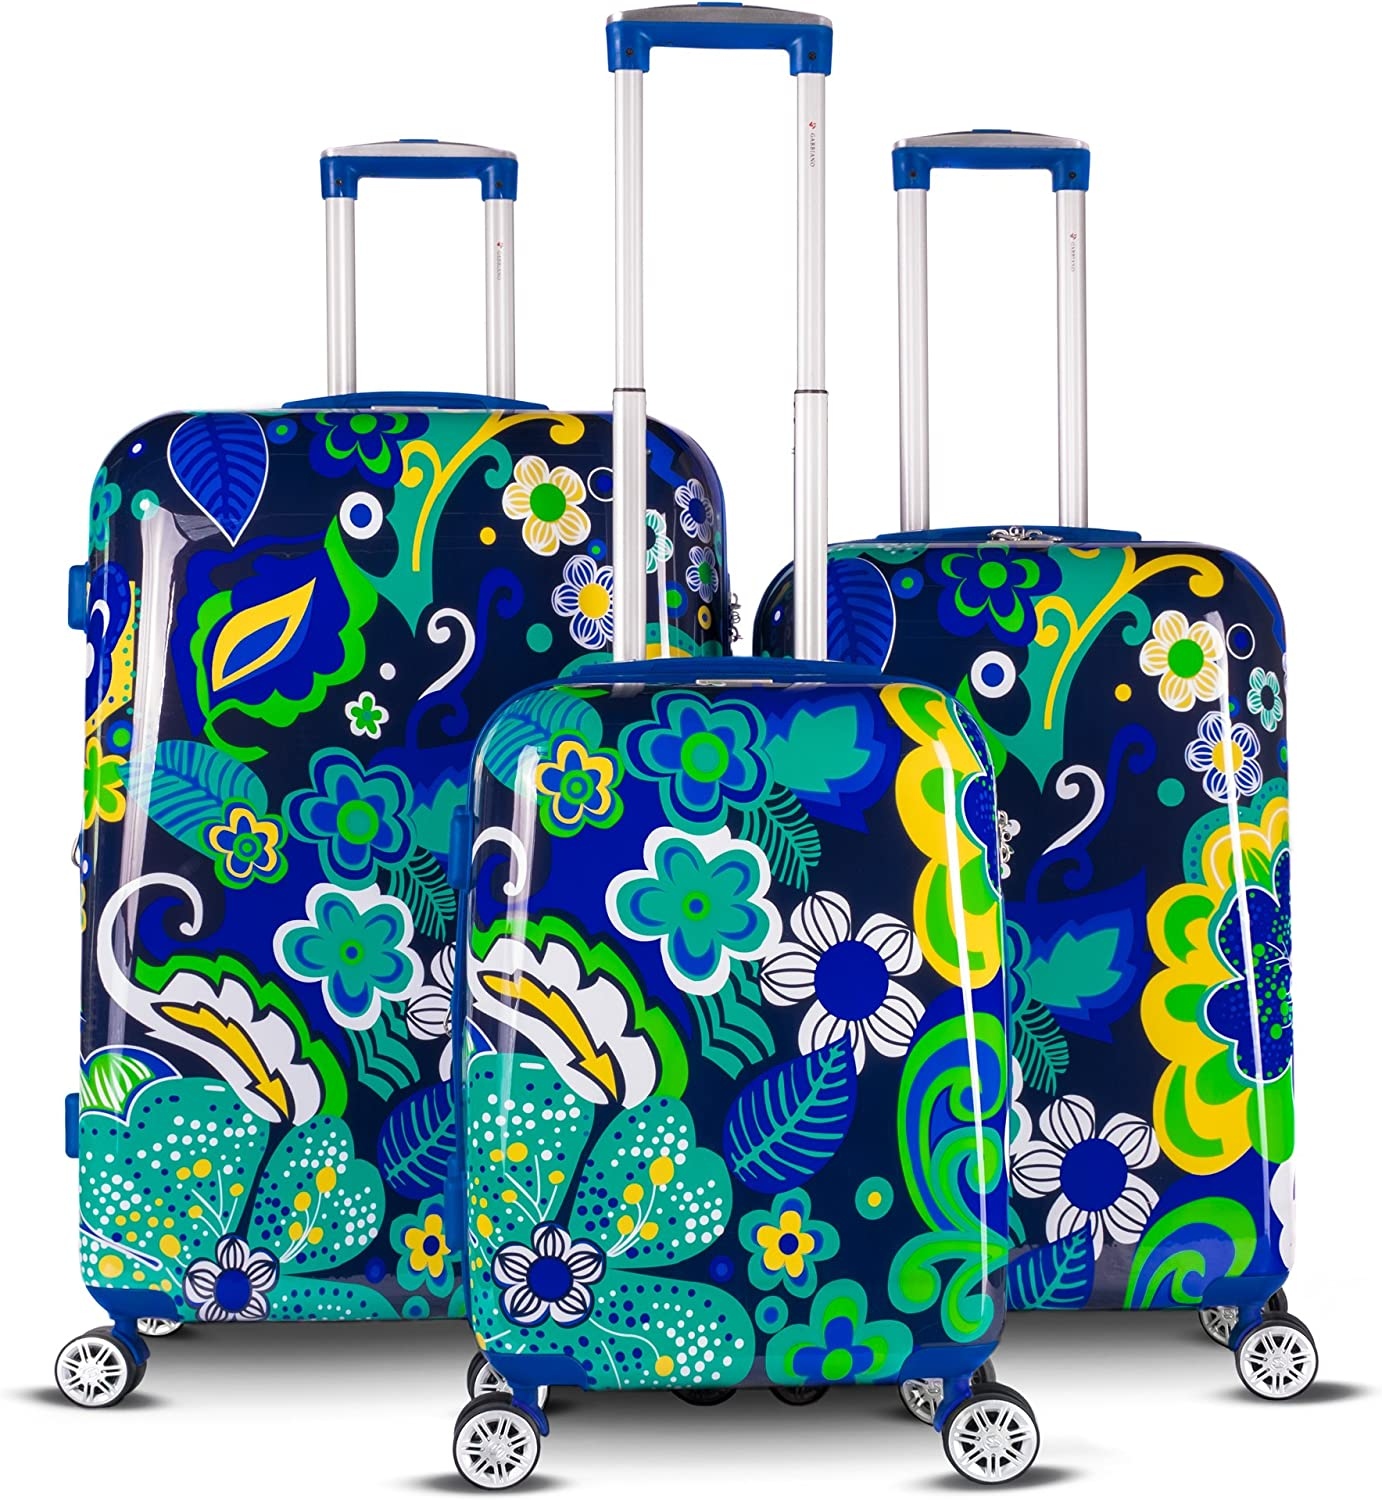 The Floral Collection 3 Piece Expandable Hardside Luggage Set Navy Floral